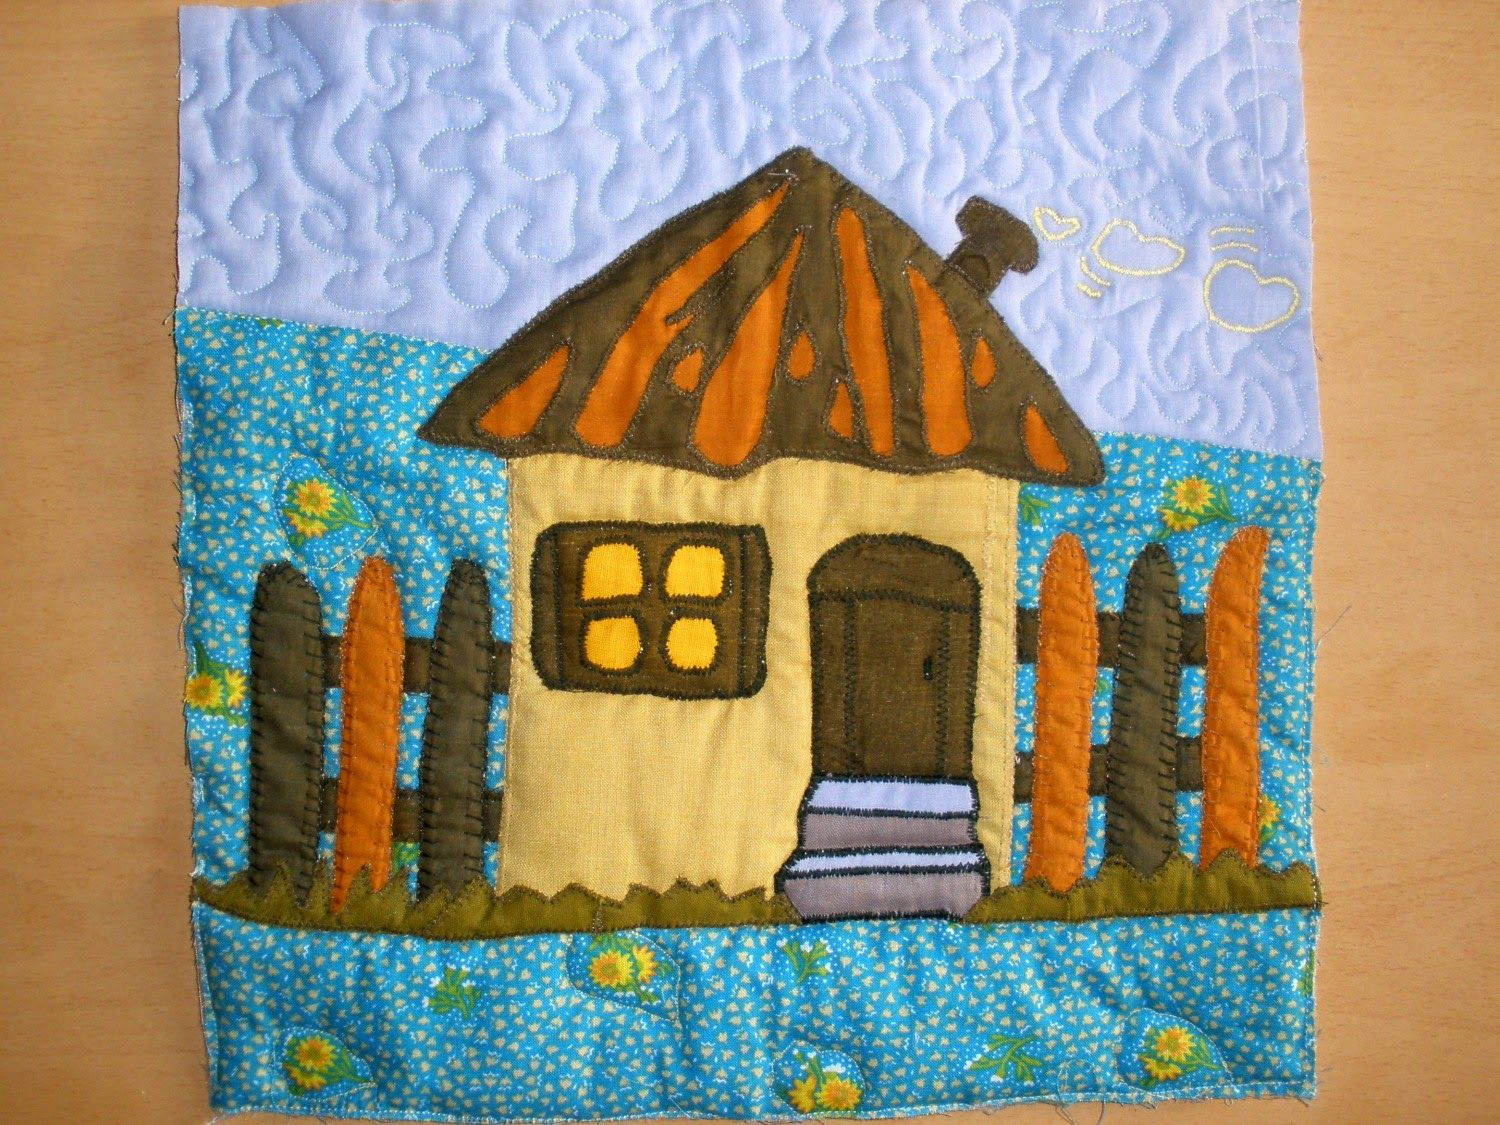 Ada's country life: Quilt Along February - houses